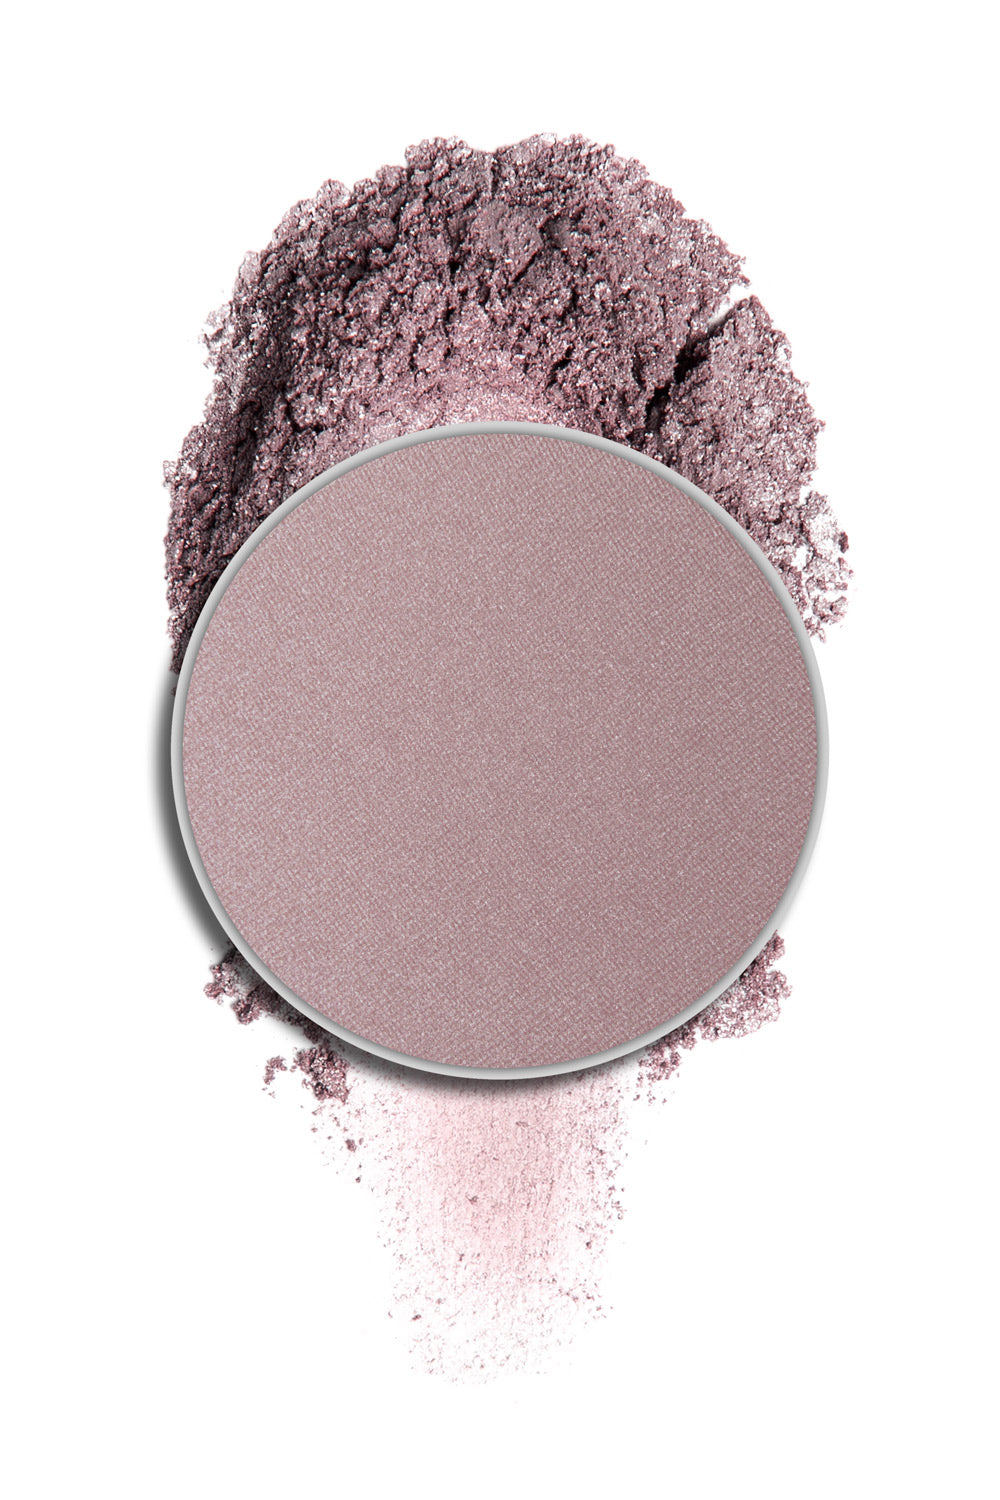 Magnificent Mauve - Type 2 Eyeshadow Pan